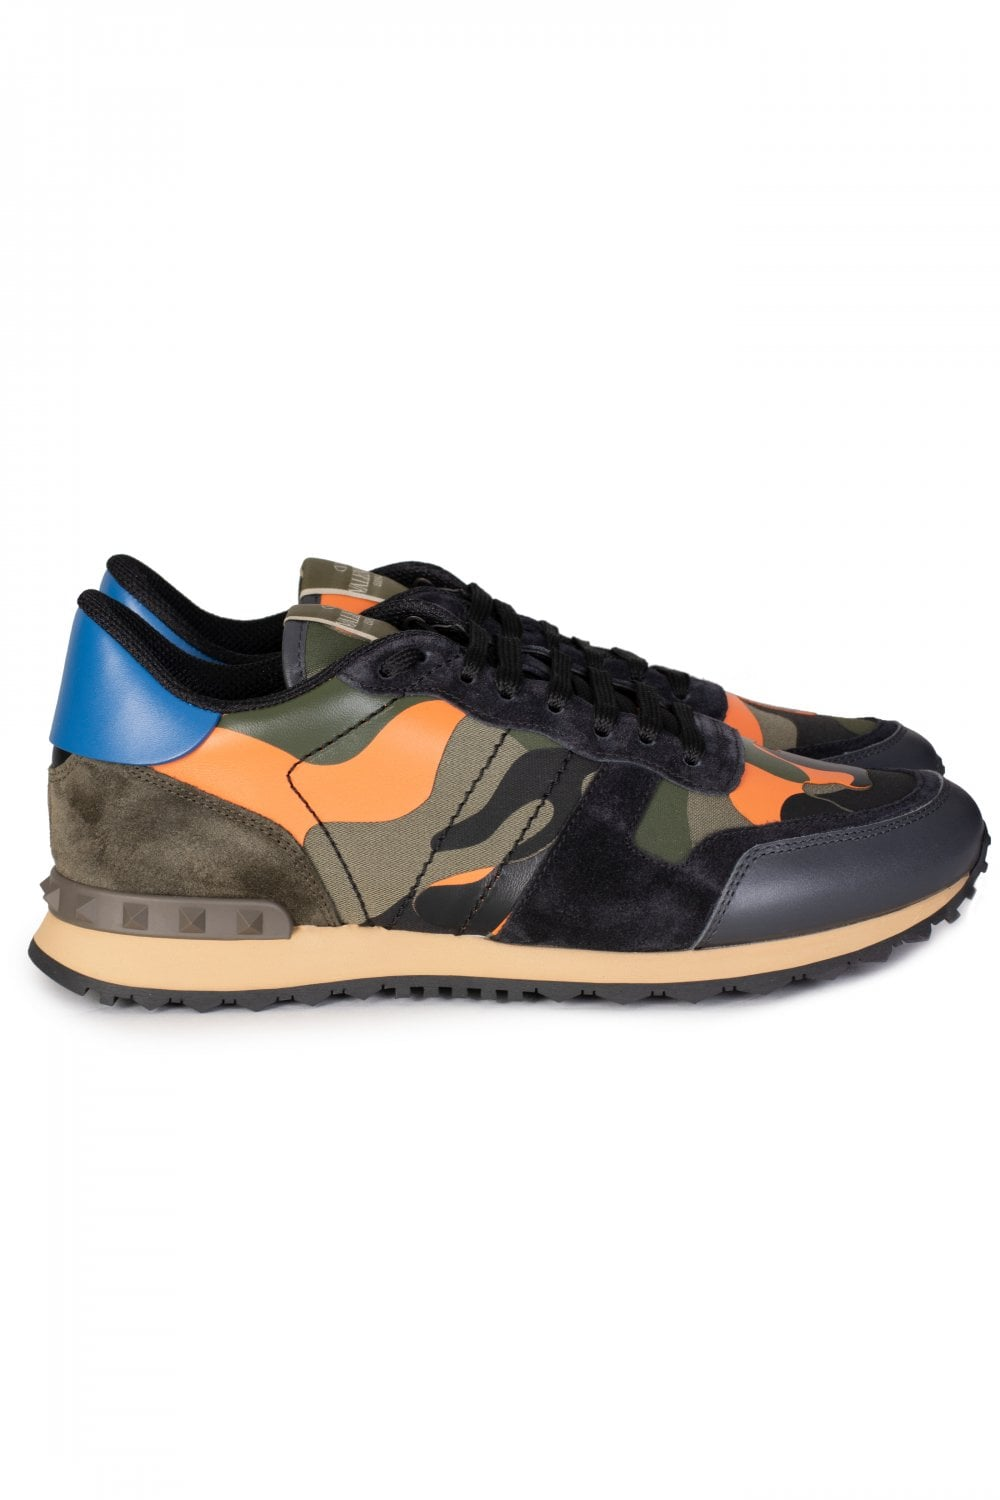 d49d4ce404a40b VALENTINO Valentino Rockrunner Camouflage Sneakers - Clothing from ...